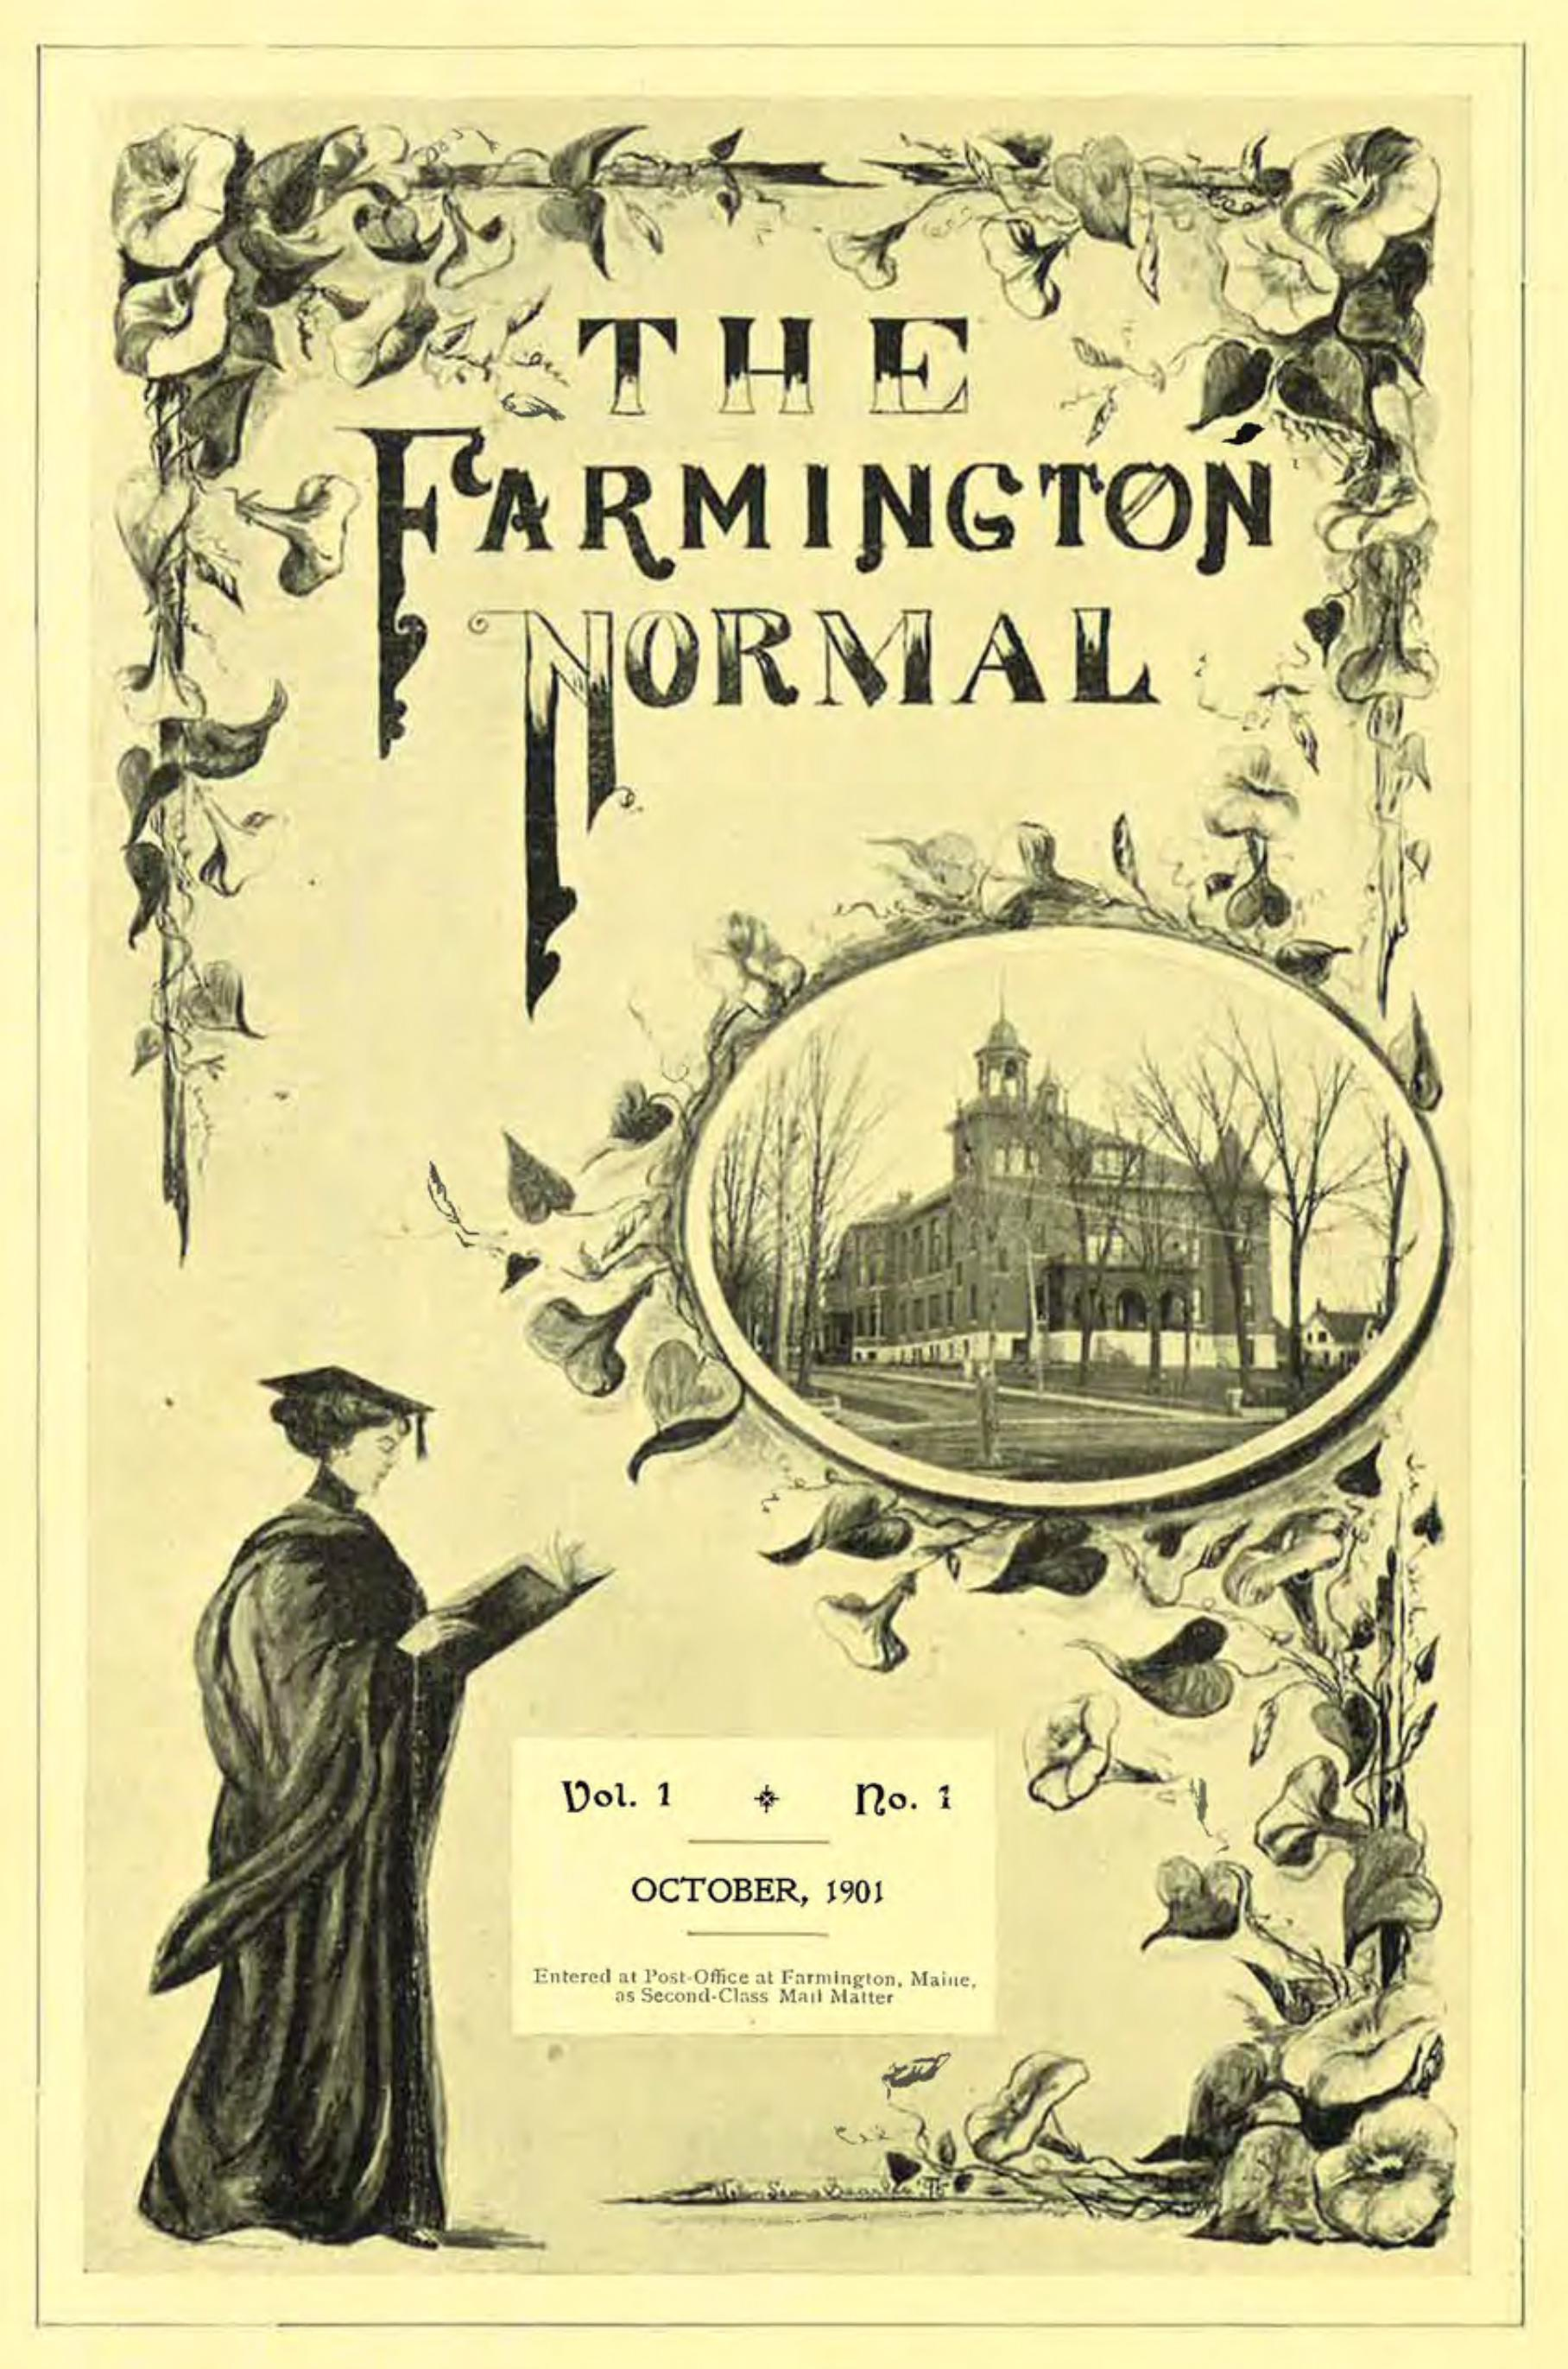 The Farmington Normal